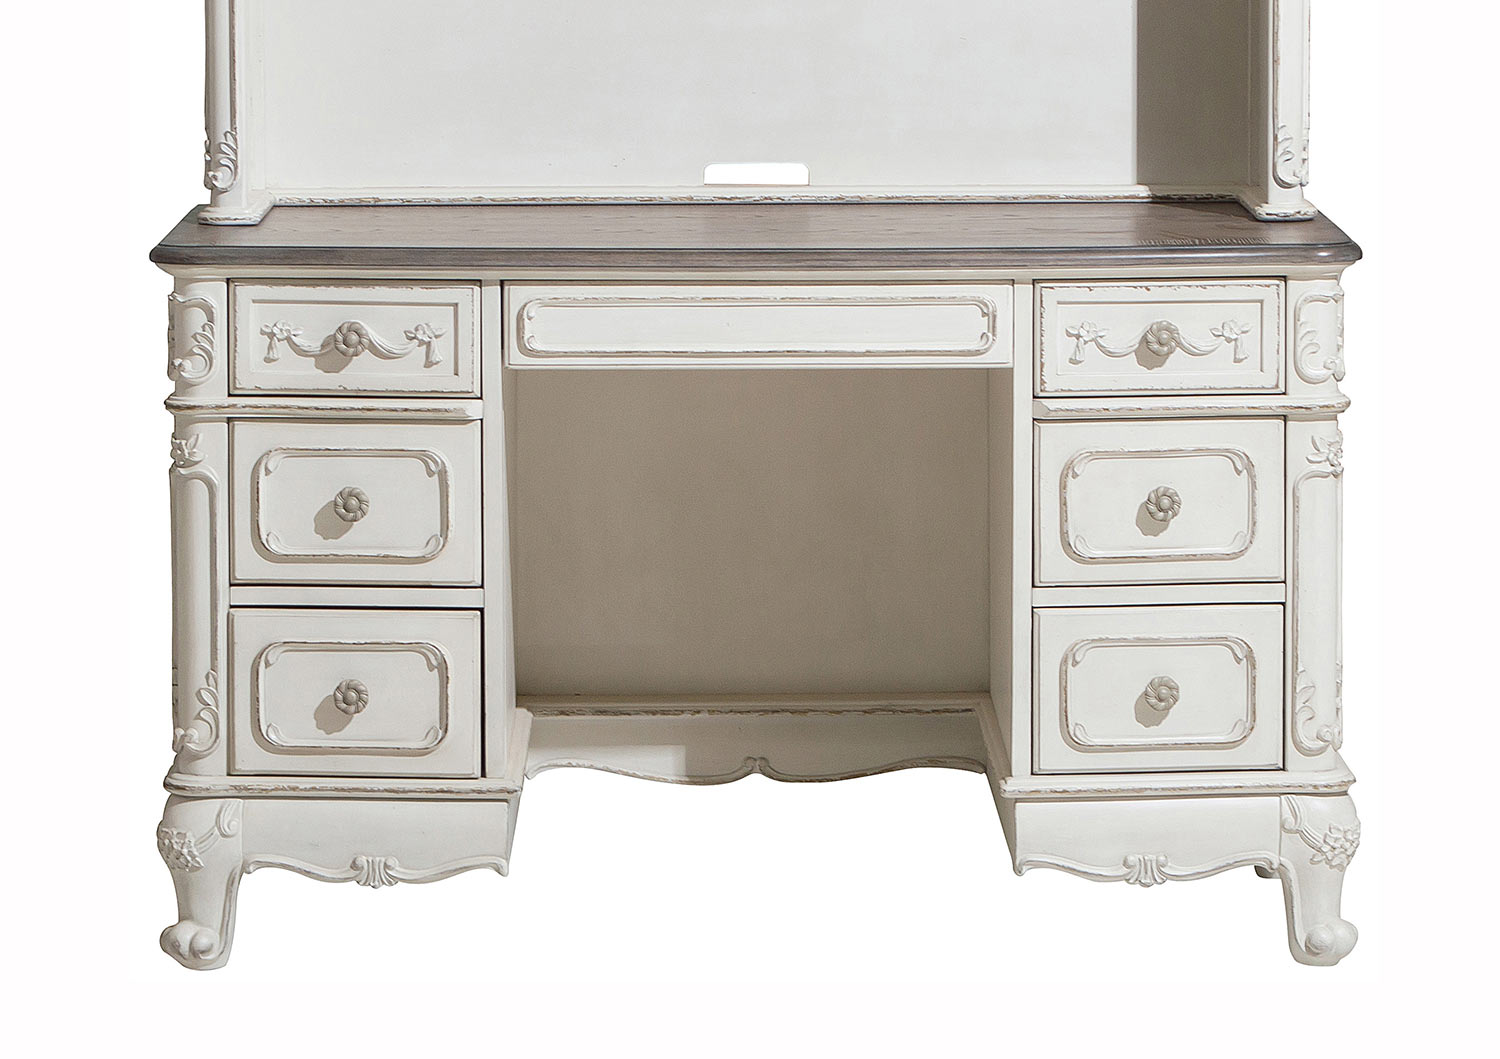 Homelegance Cinderella Writing Desk - Antique White with Gray Rub-Through